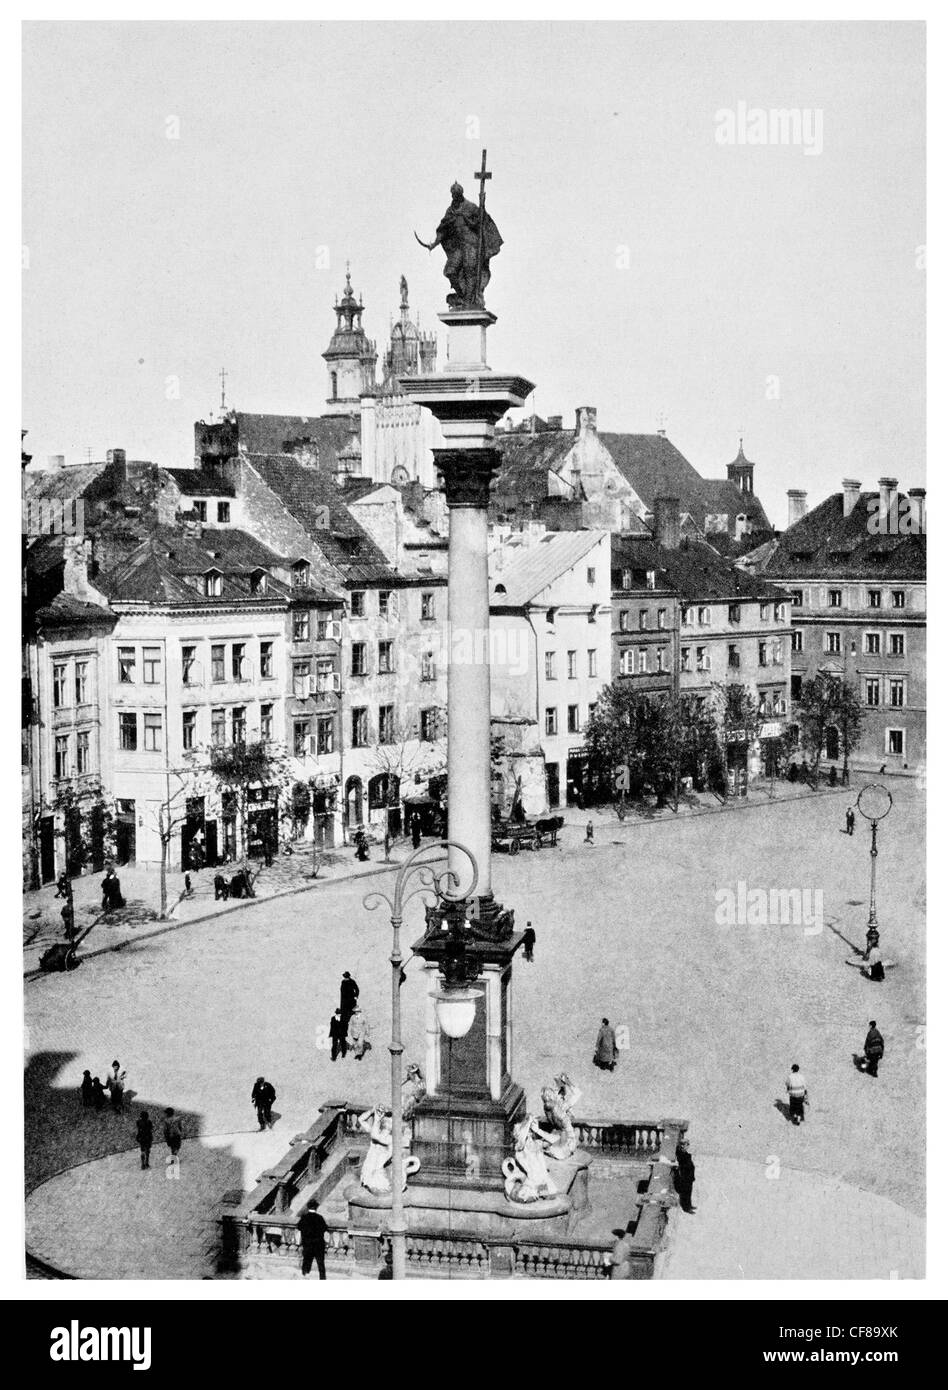 1926 The Royal Palace in the Old town of Warsaw, Poland. Palace square Warsaw King of Poland  monument - Stock Image